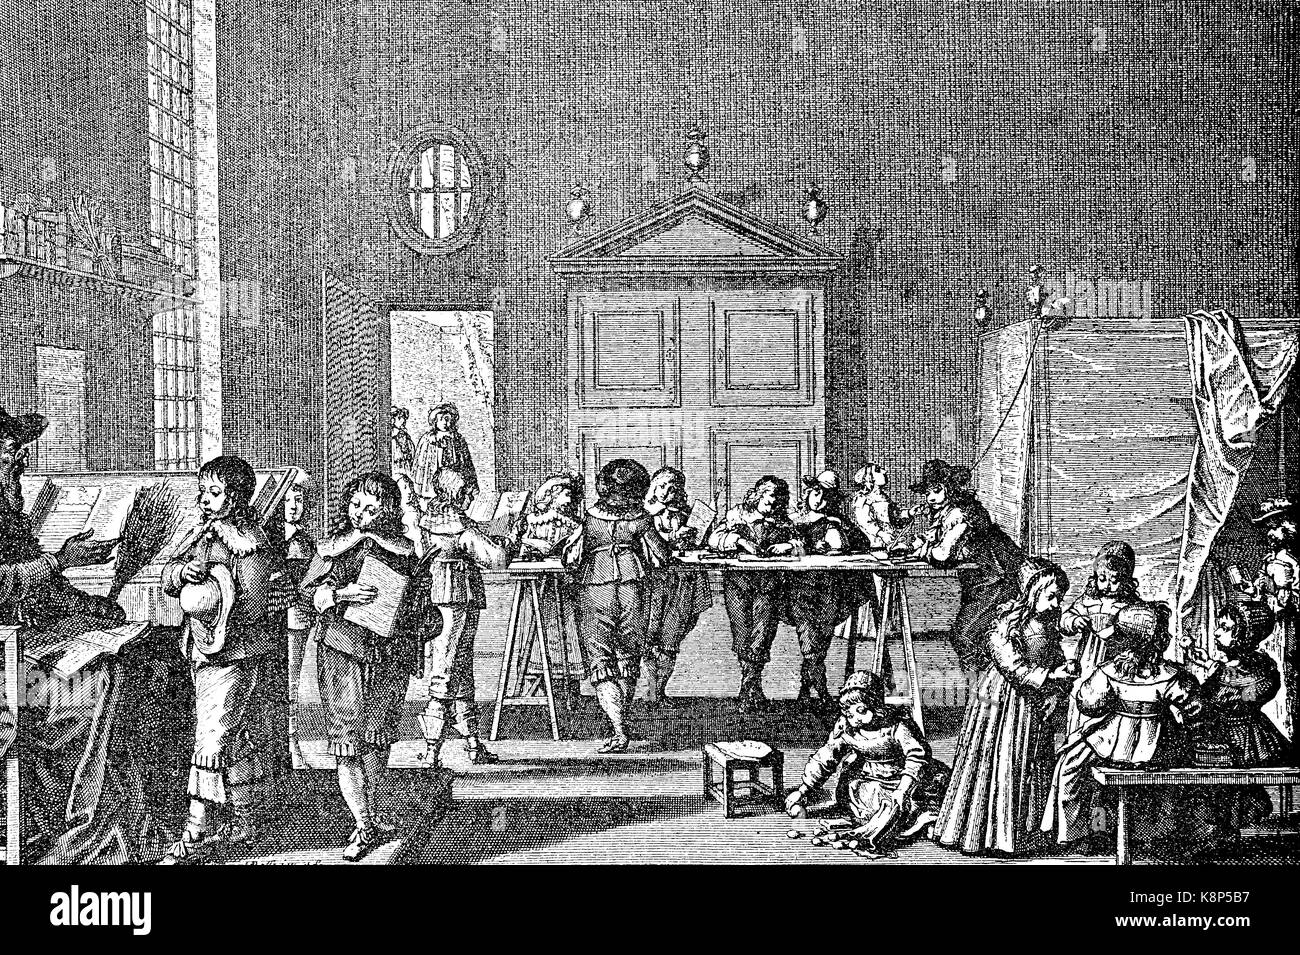 School of boys in the 17th century, Knabenschule im 17. Jahrhundert, digital improved reproduction of a woodcut, Stock Photo